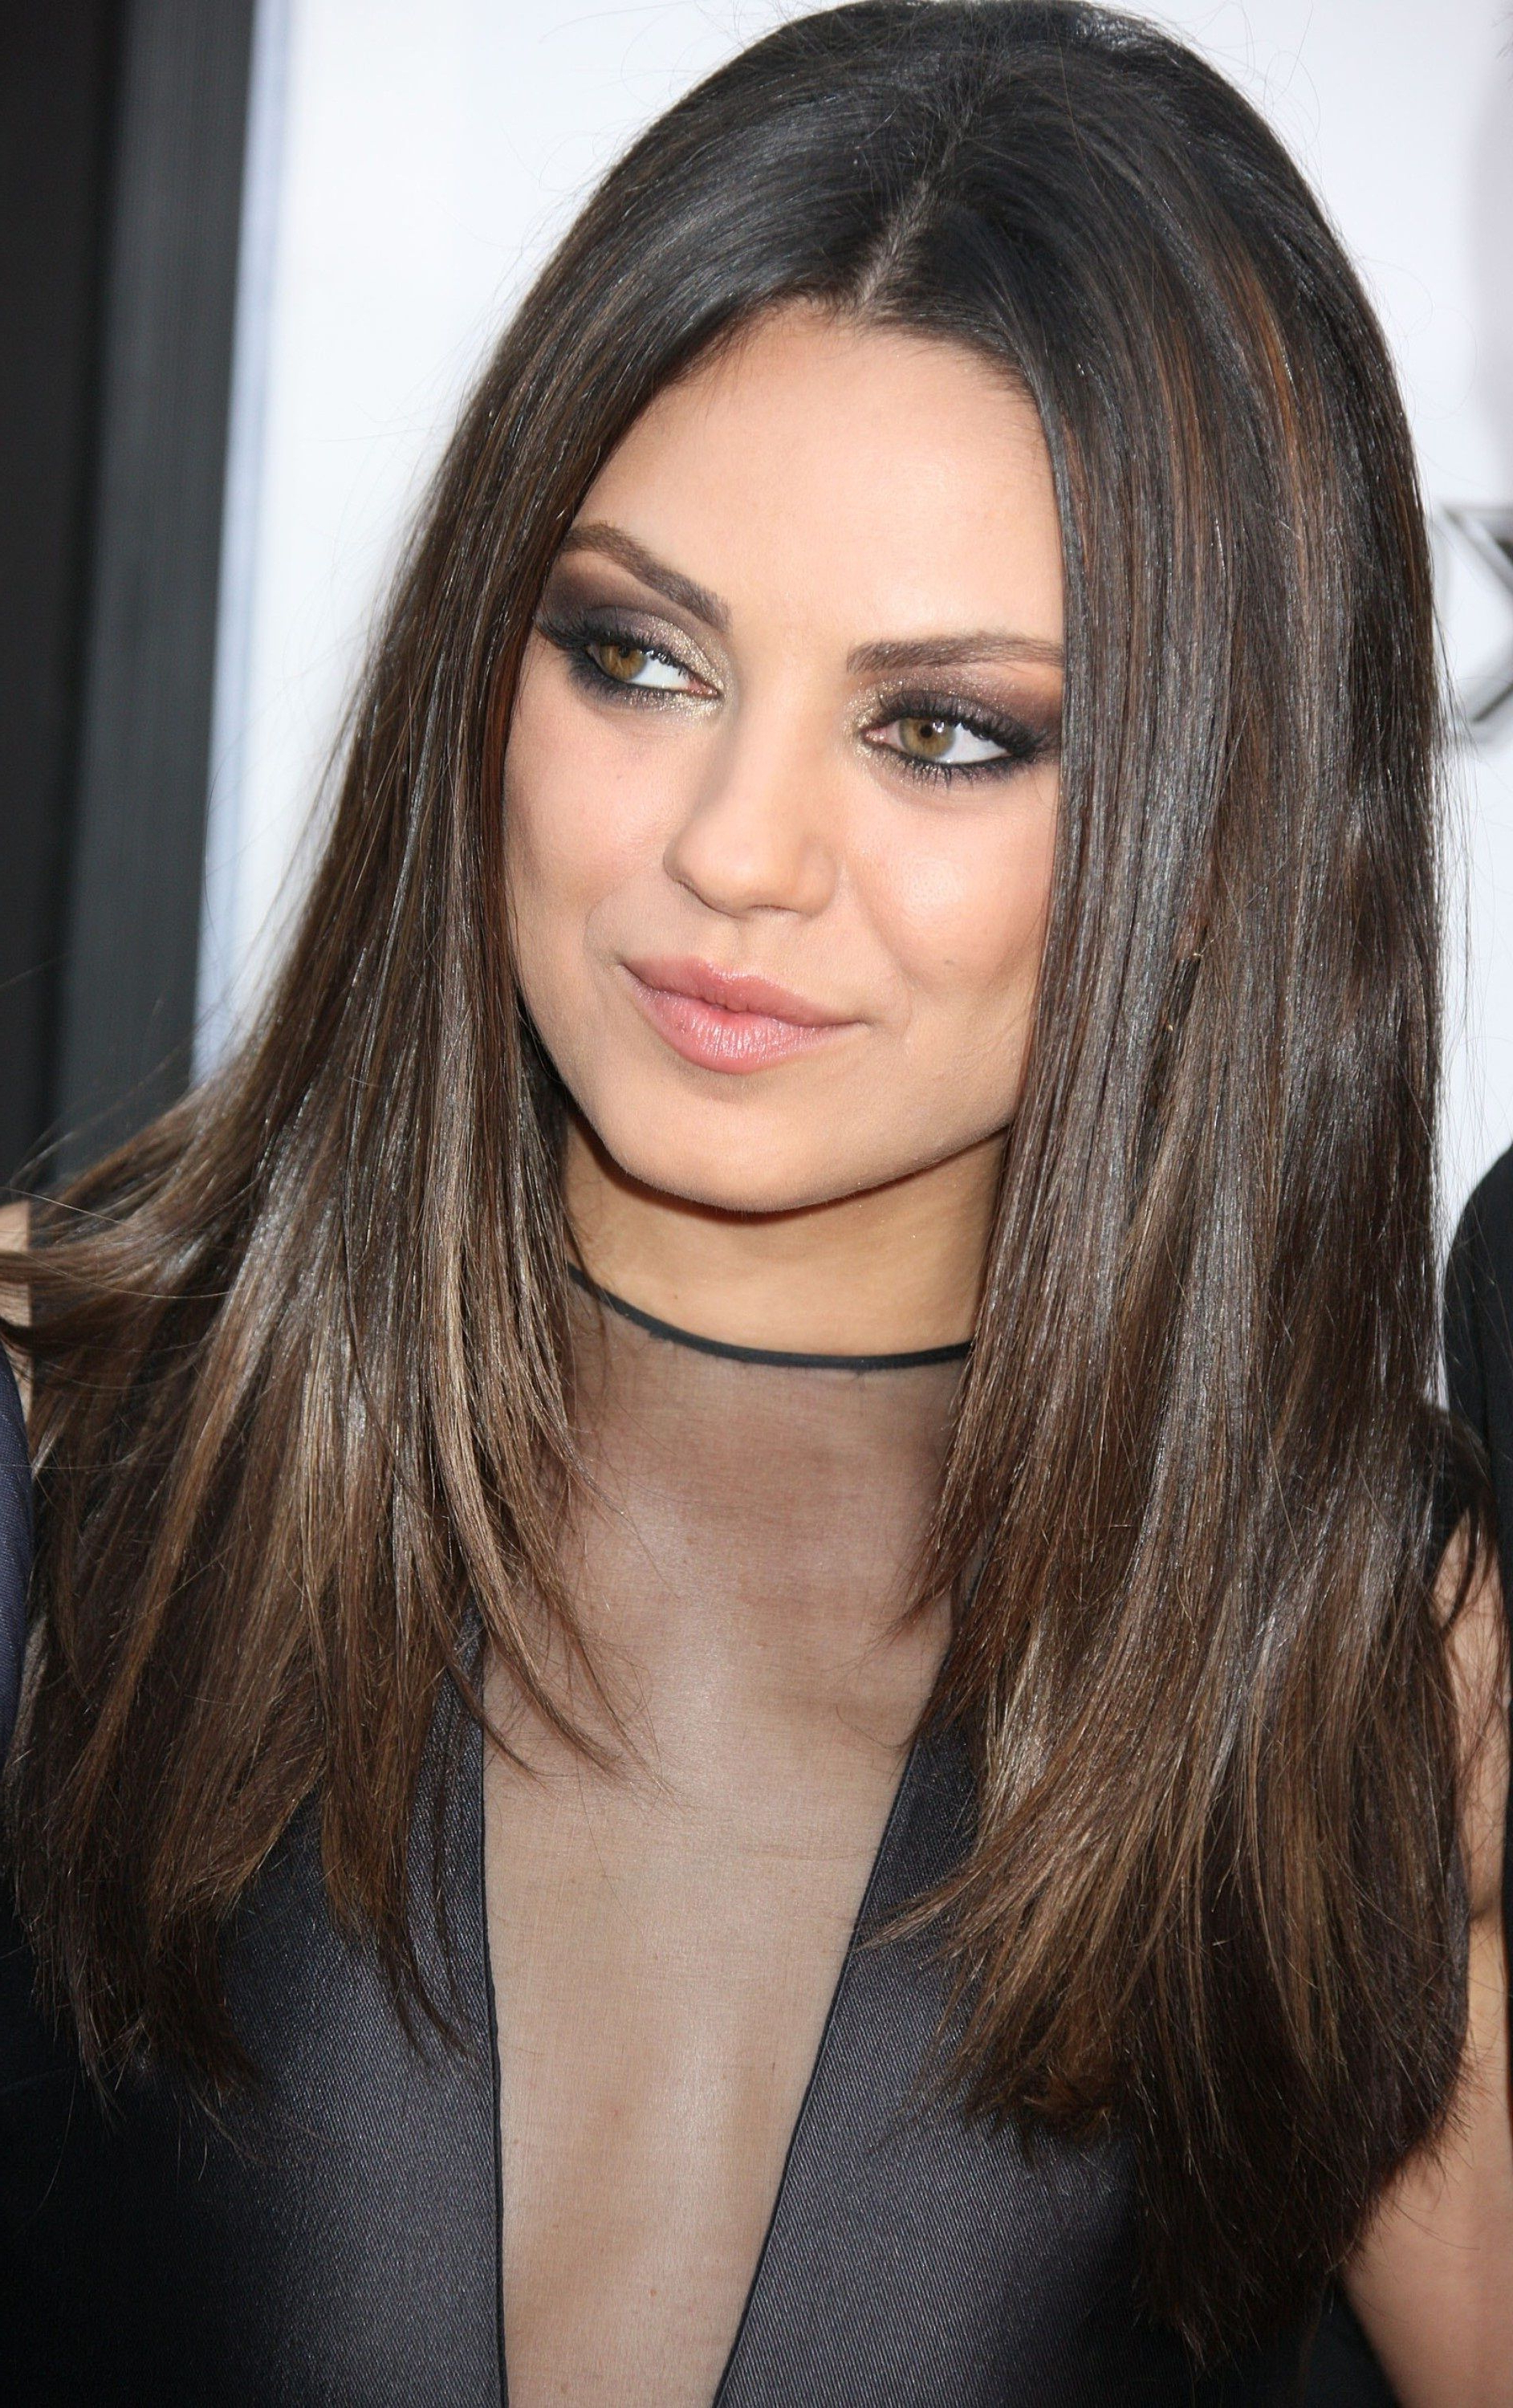 Well Known Medium Hairstyles For Large Noses Pertaining To Mila Kunis – Next Haircut, A Little Shorter (View 20 of 20)